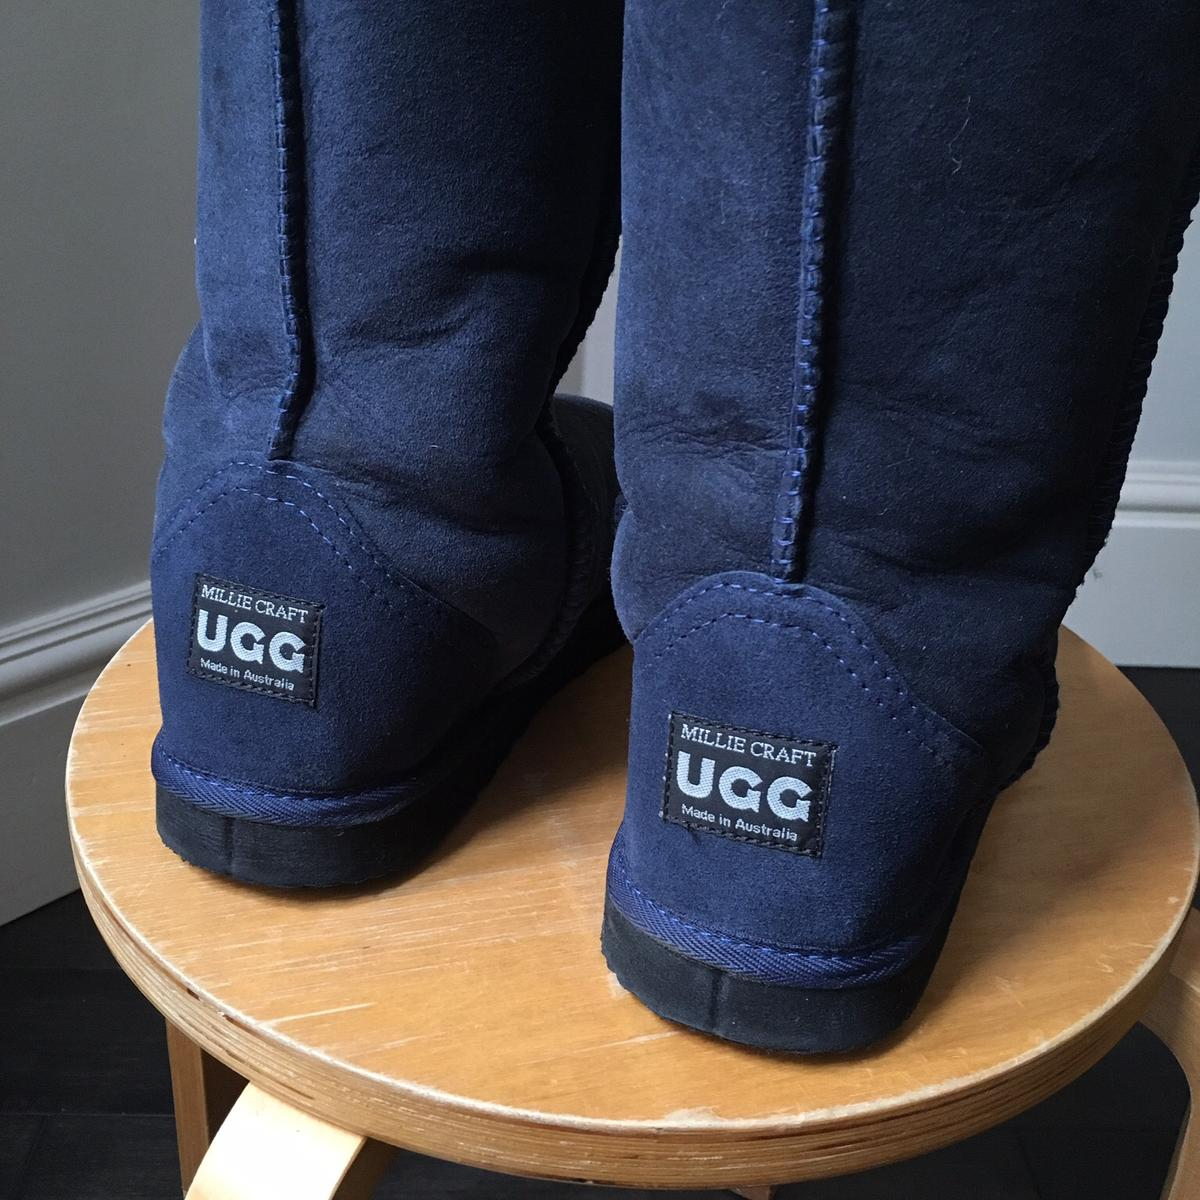 5aaedfb2ea7 Navy UGG boots in SW1H London for £50.00 for sale - Shpock